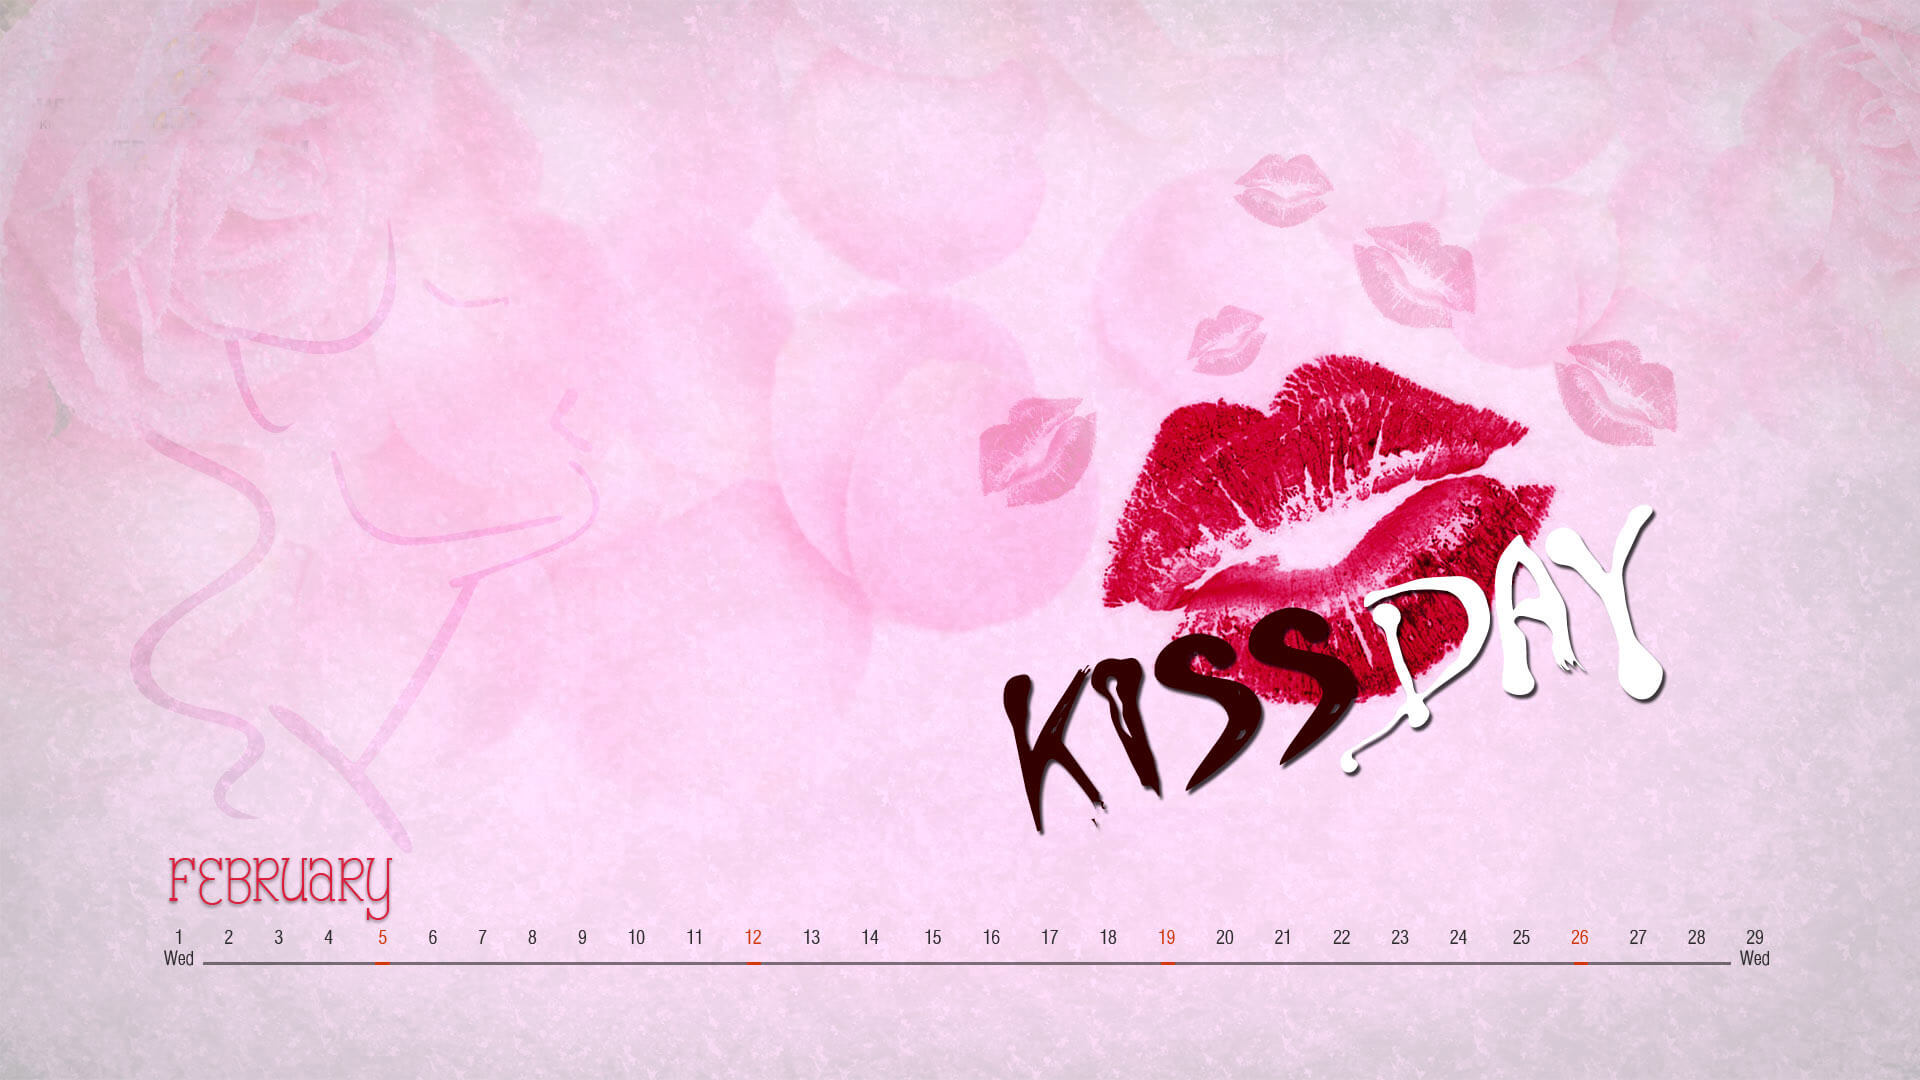 happy kiss day wishes lips love valentine february 12th modern hd wallpaper